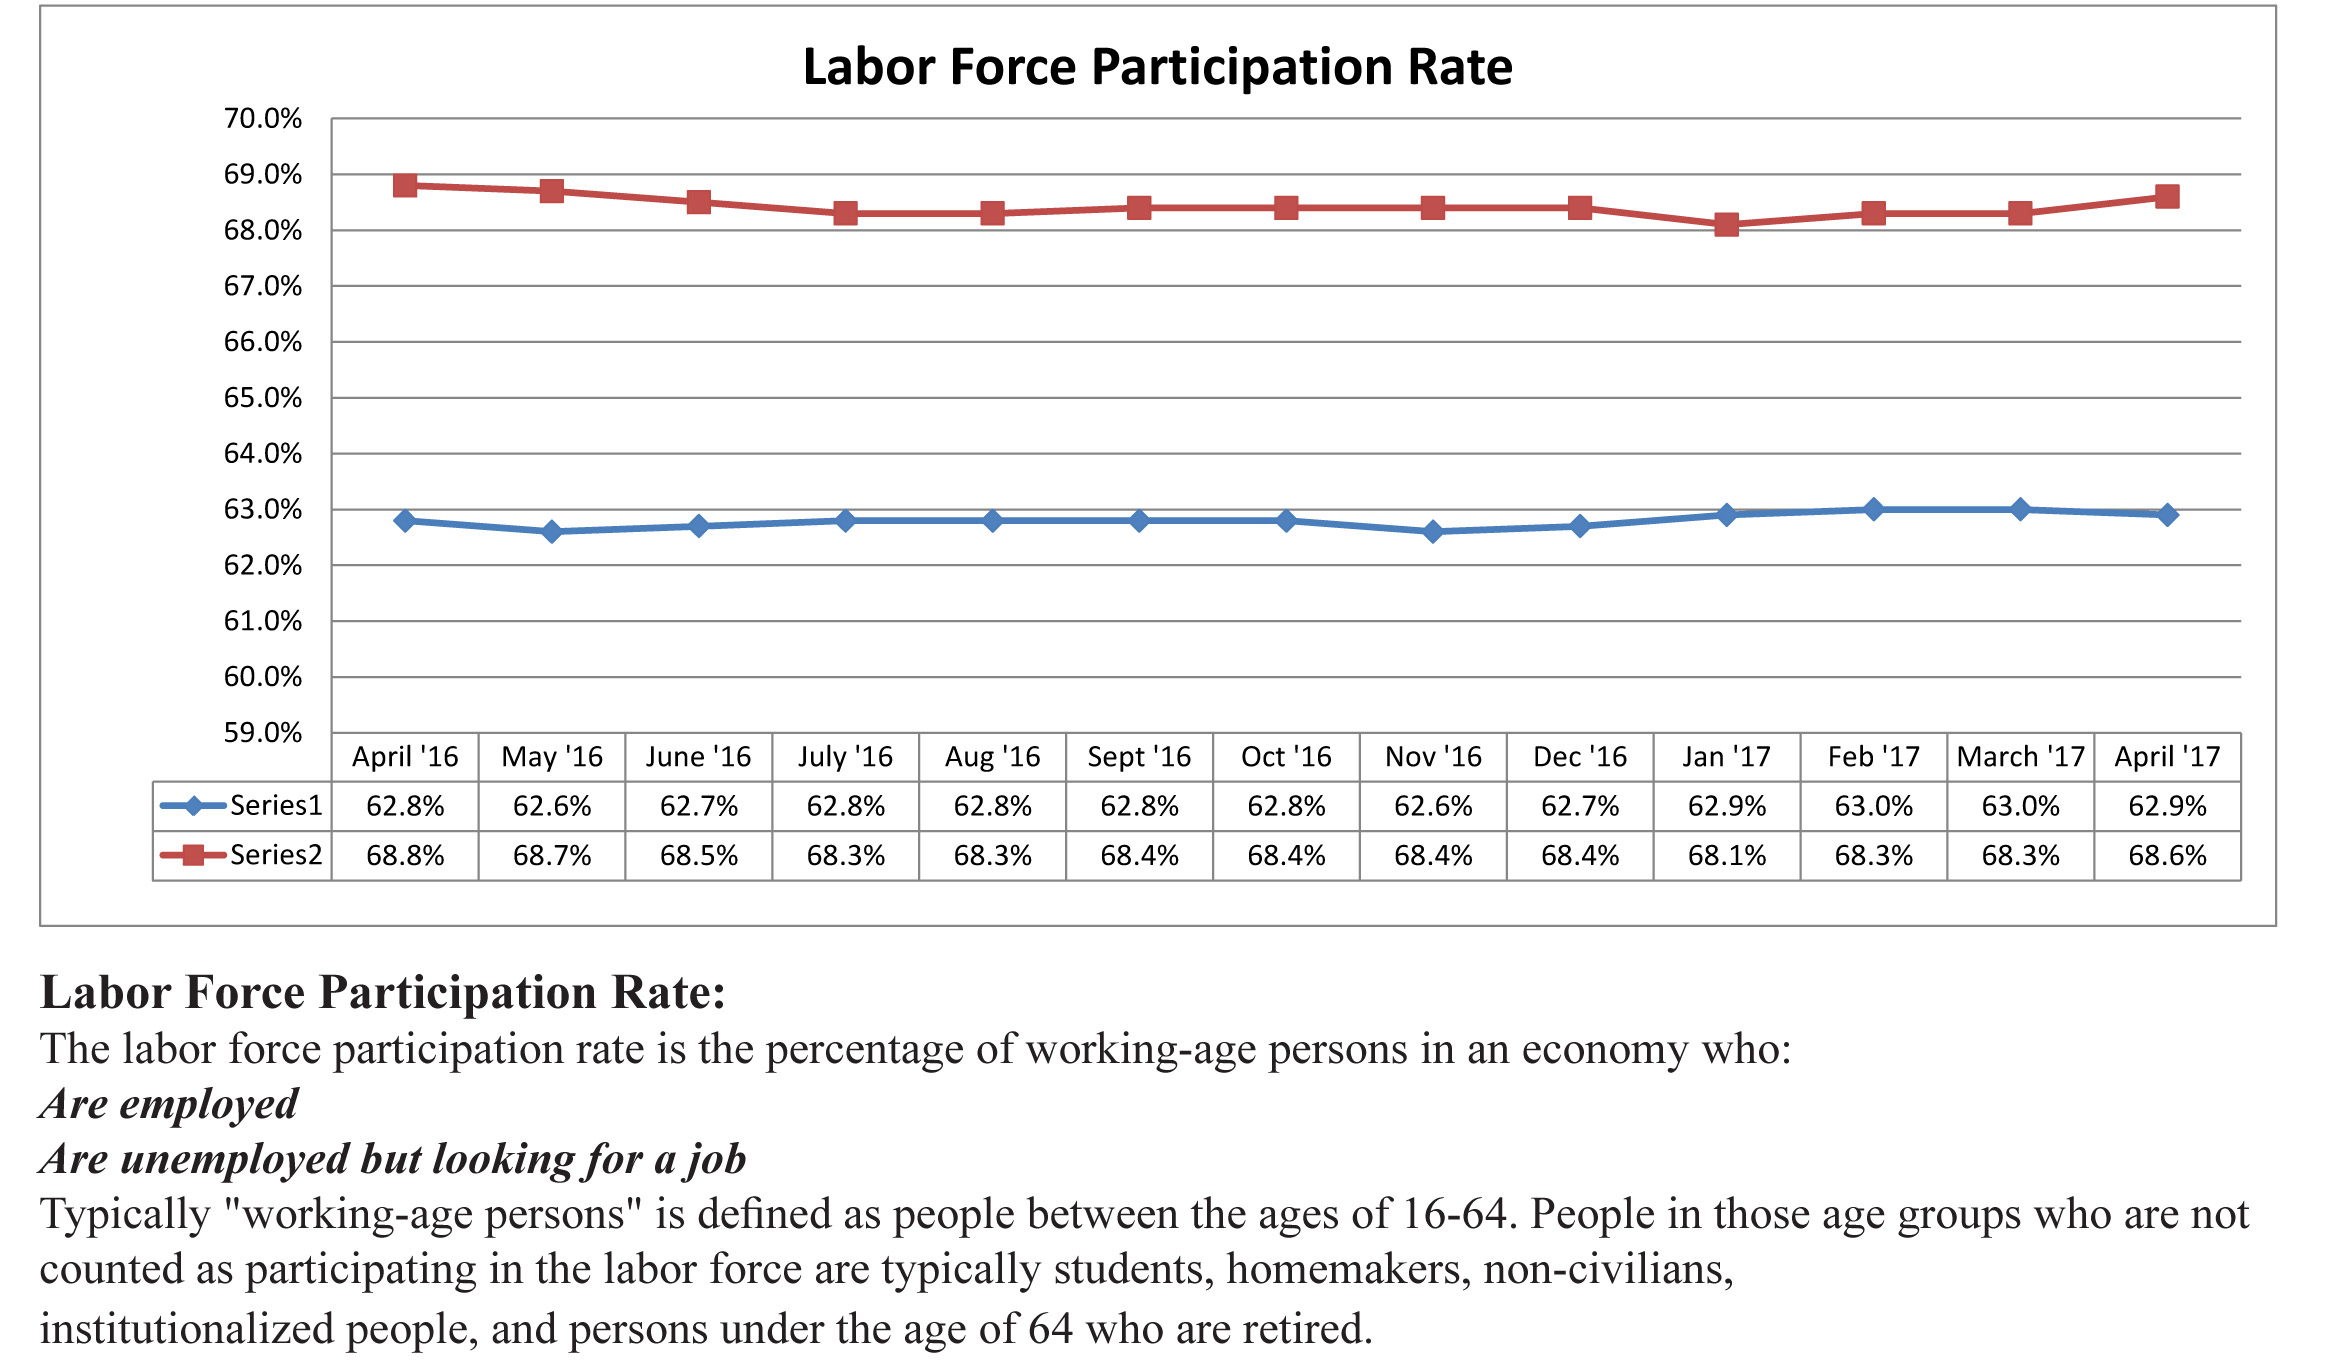 October 2017 Participation Rate